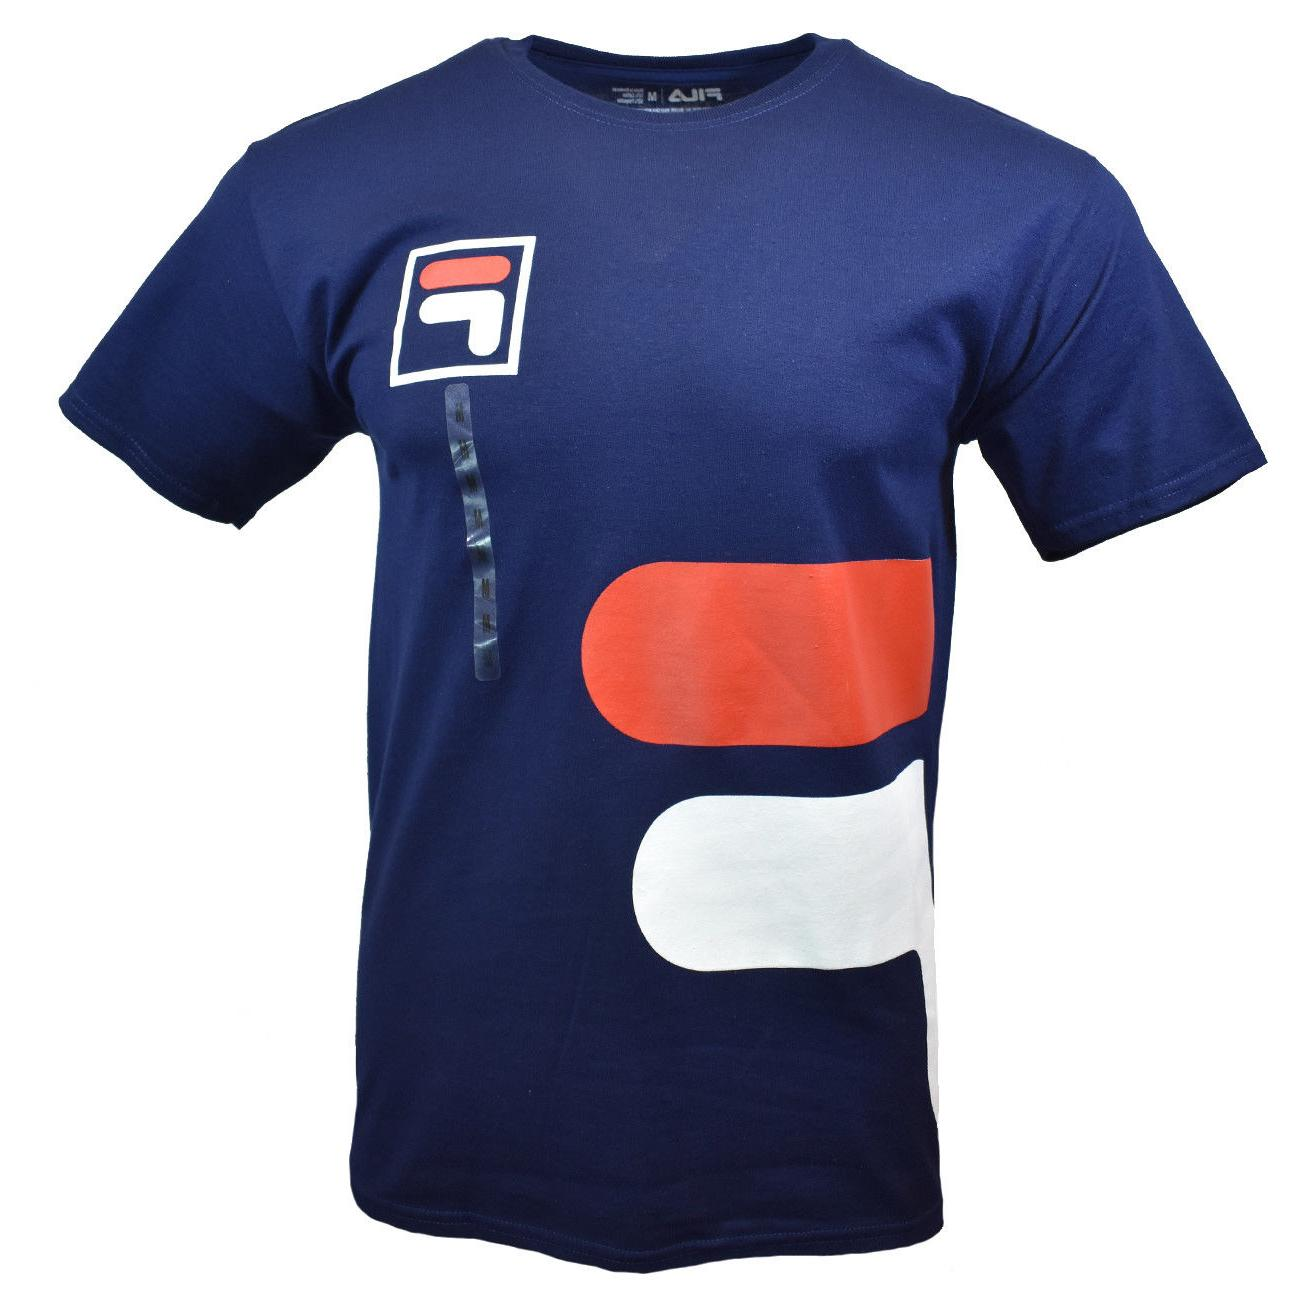 FILA Mens T Shirt S M L Logo Graphic Athletic Sports Apparel